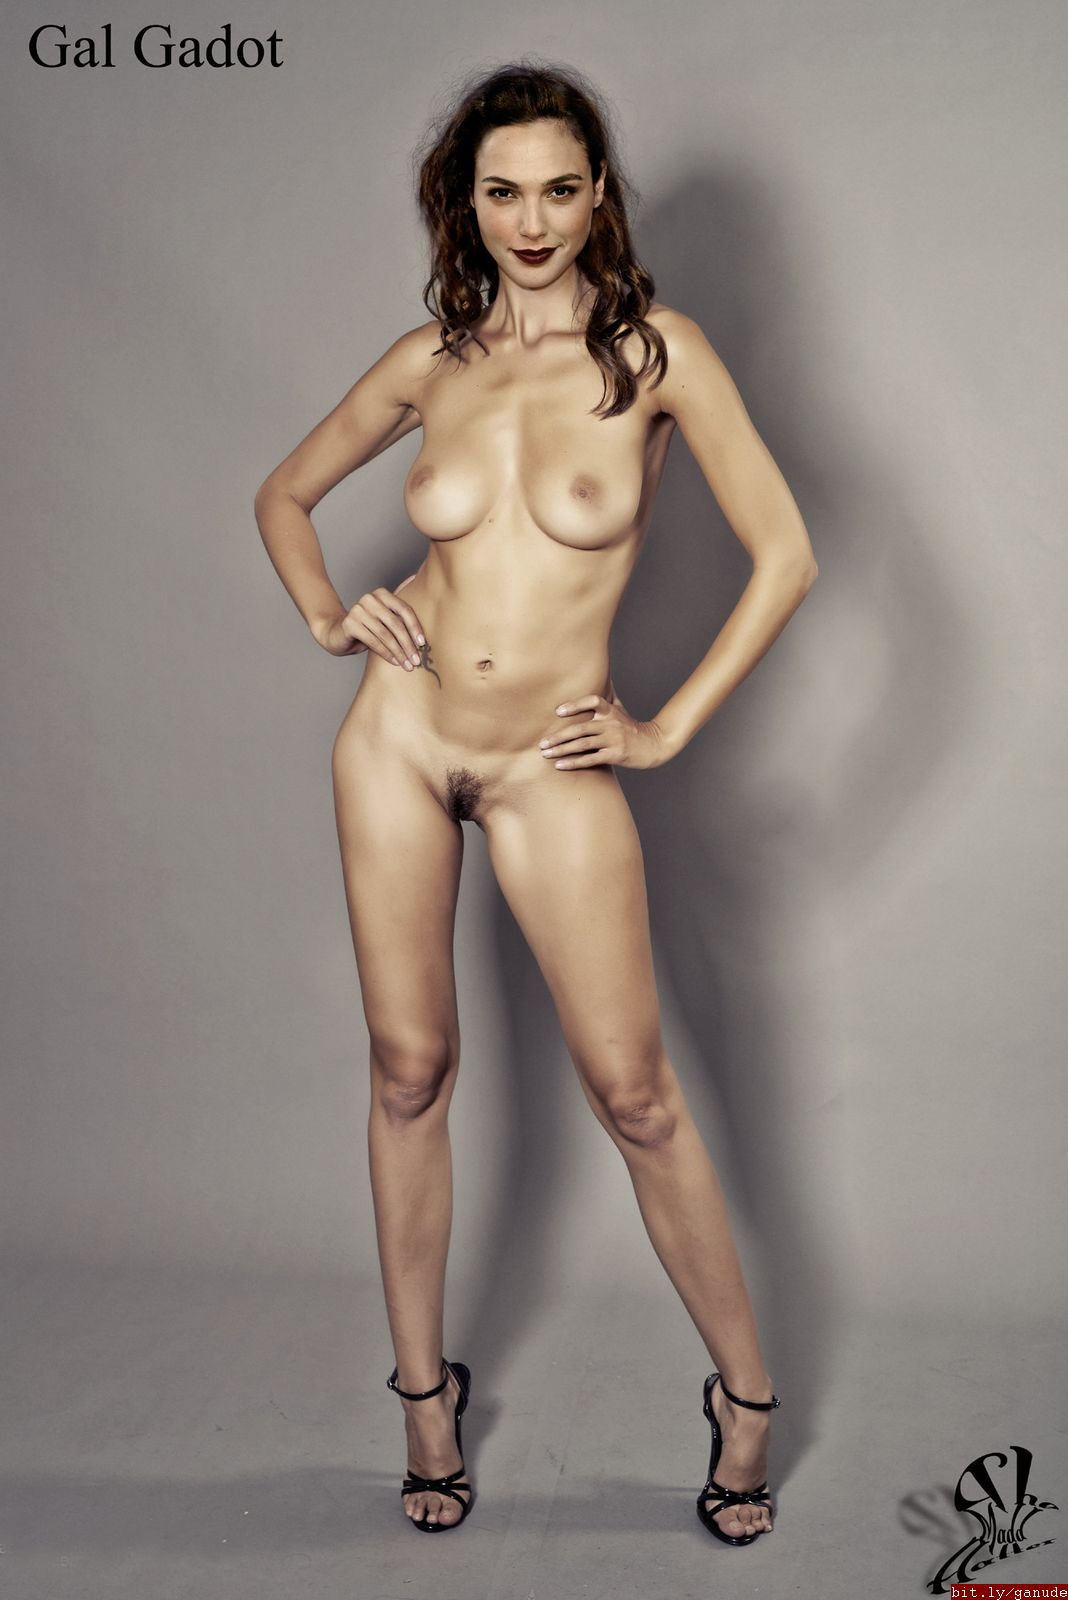 These Gal Gadot Nudes Are Wonderful